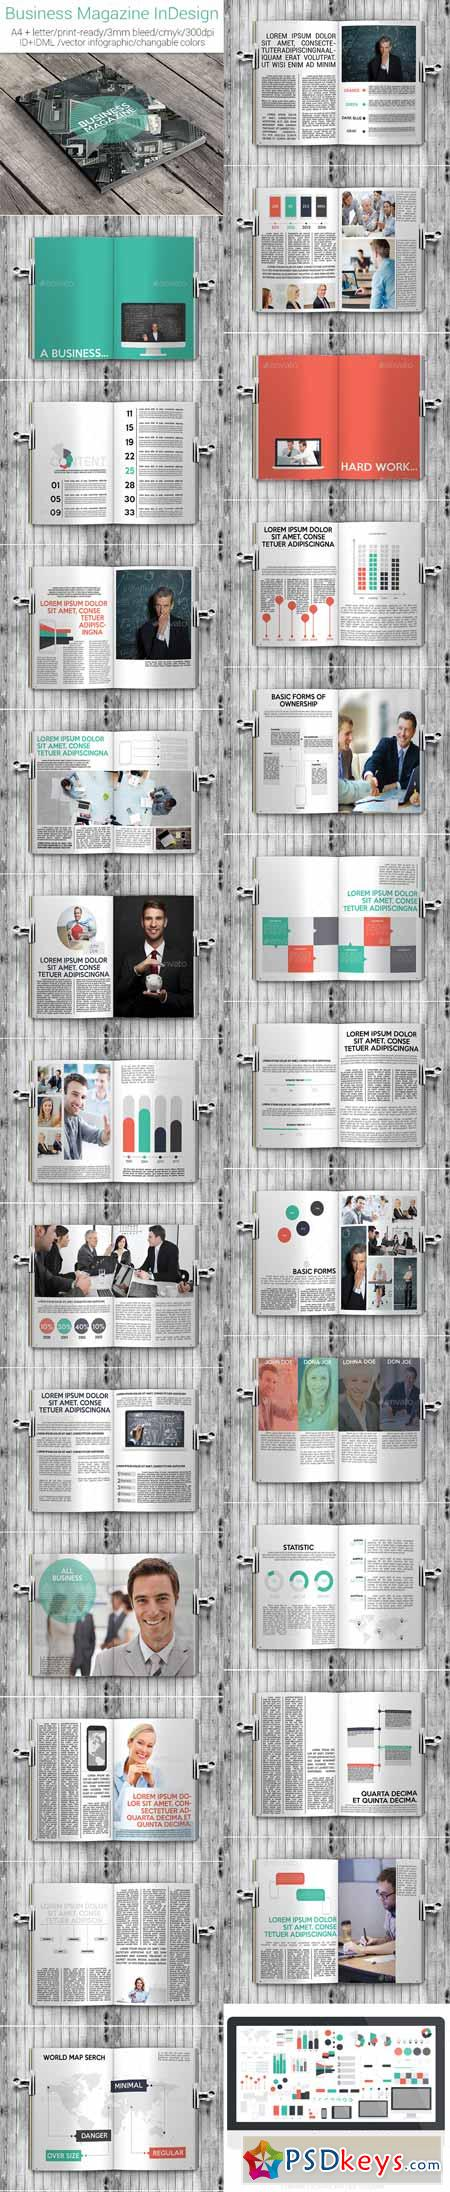 Business magazine indesign a4letter template 11540750 free business magazine indesign a4letter template 11540750 spiritdancerdesigns Gallery